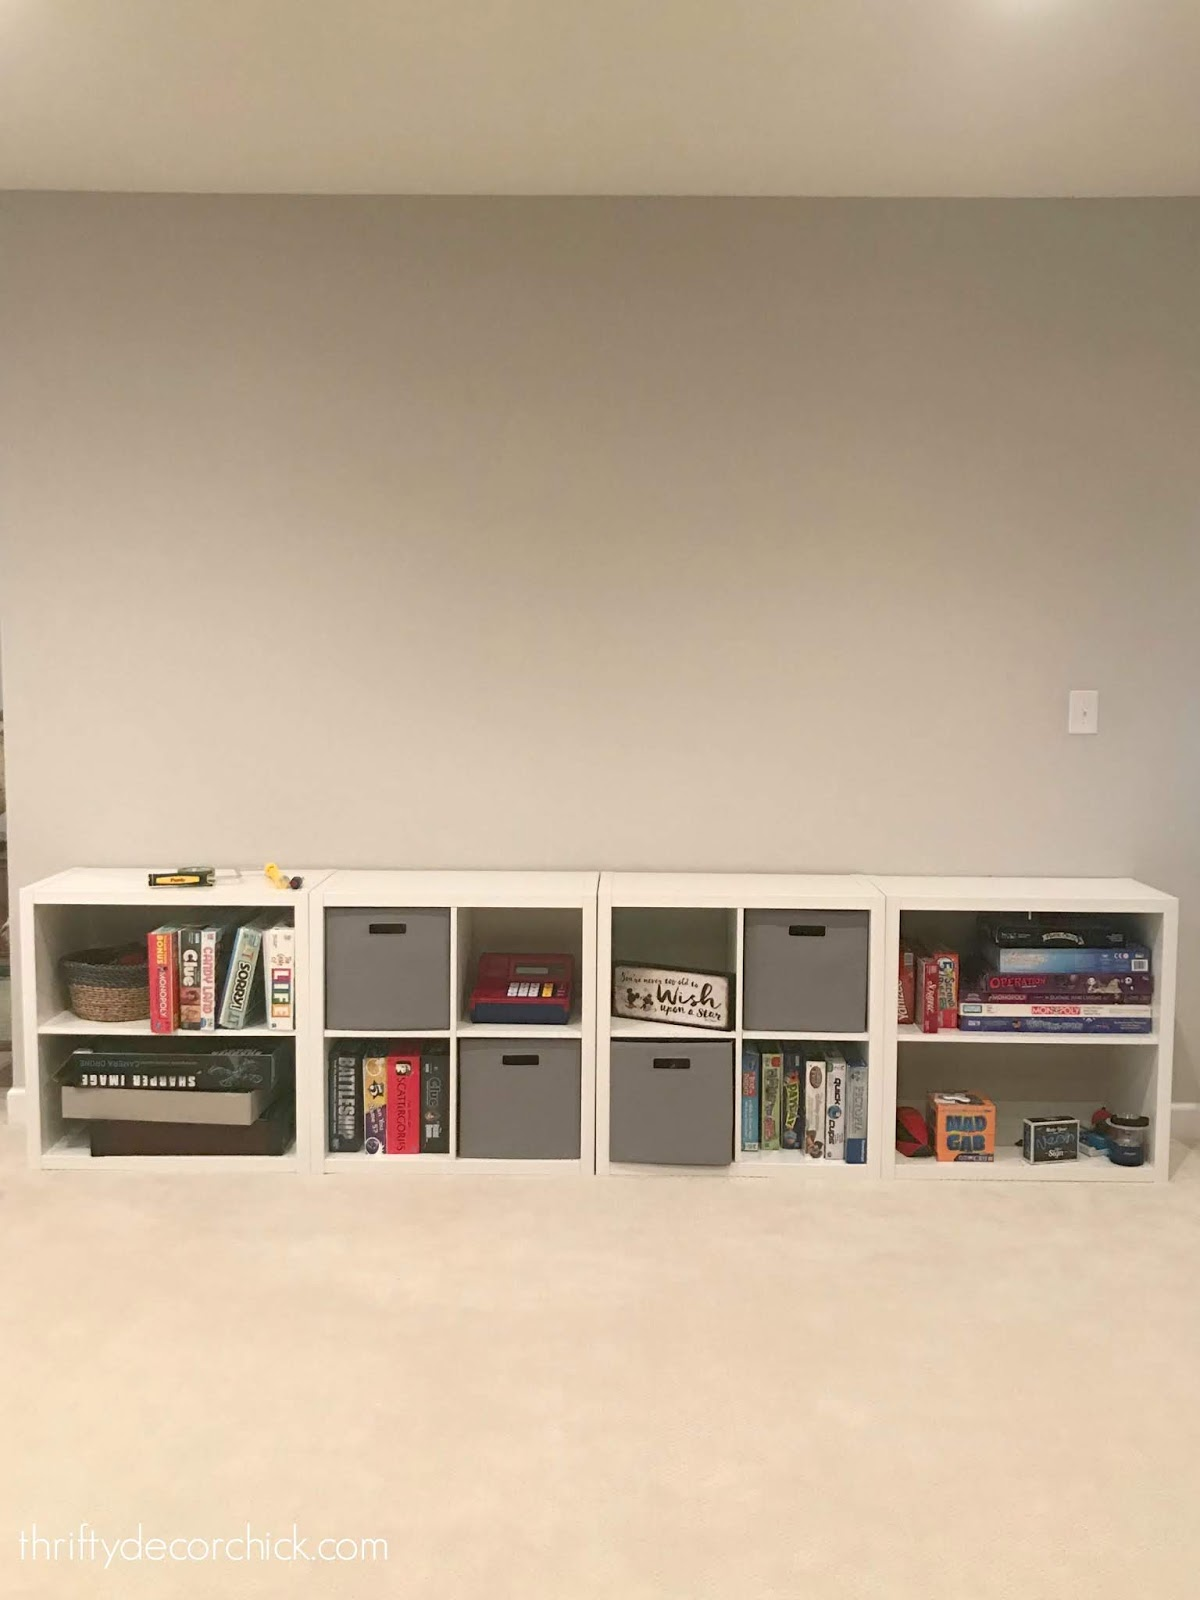 Square Kallax IKEA cubbies